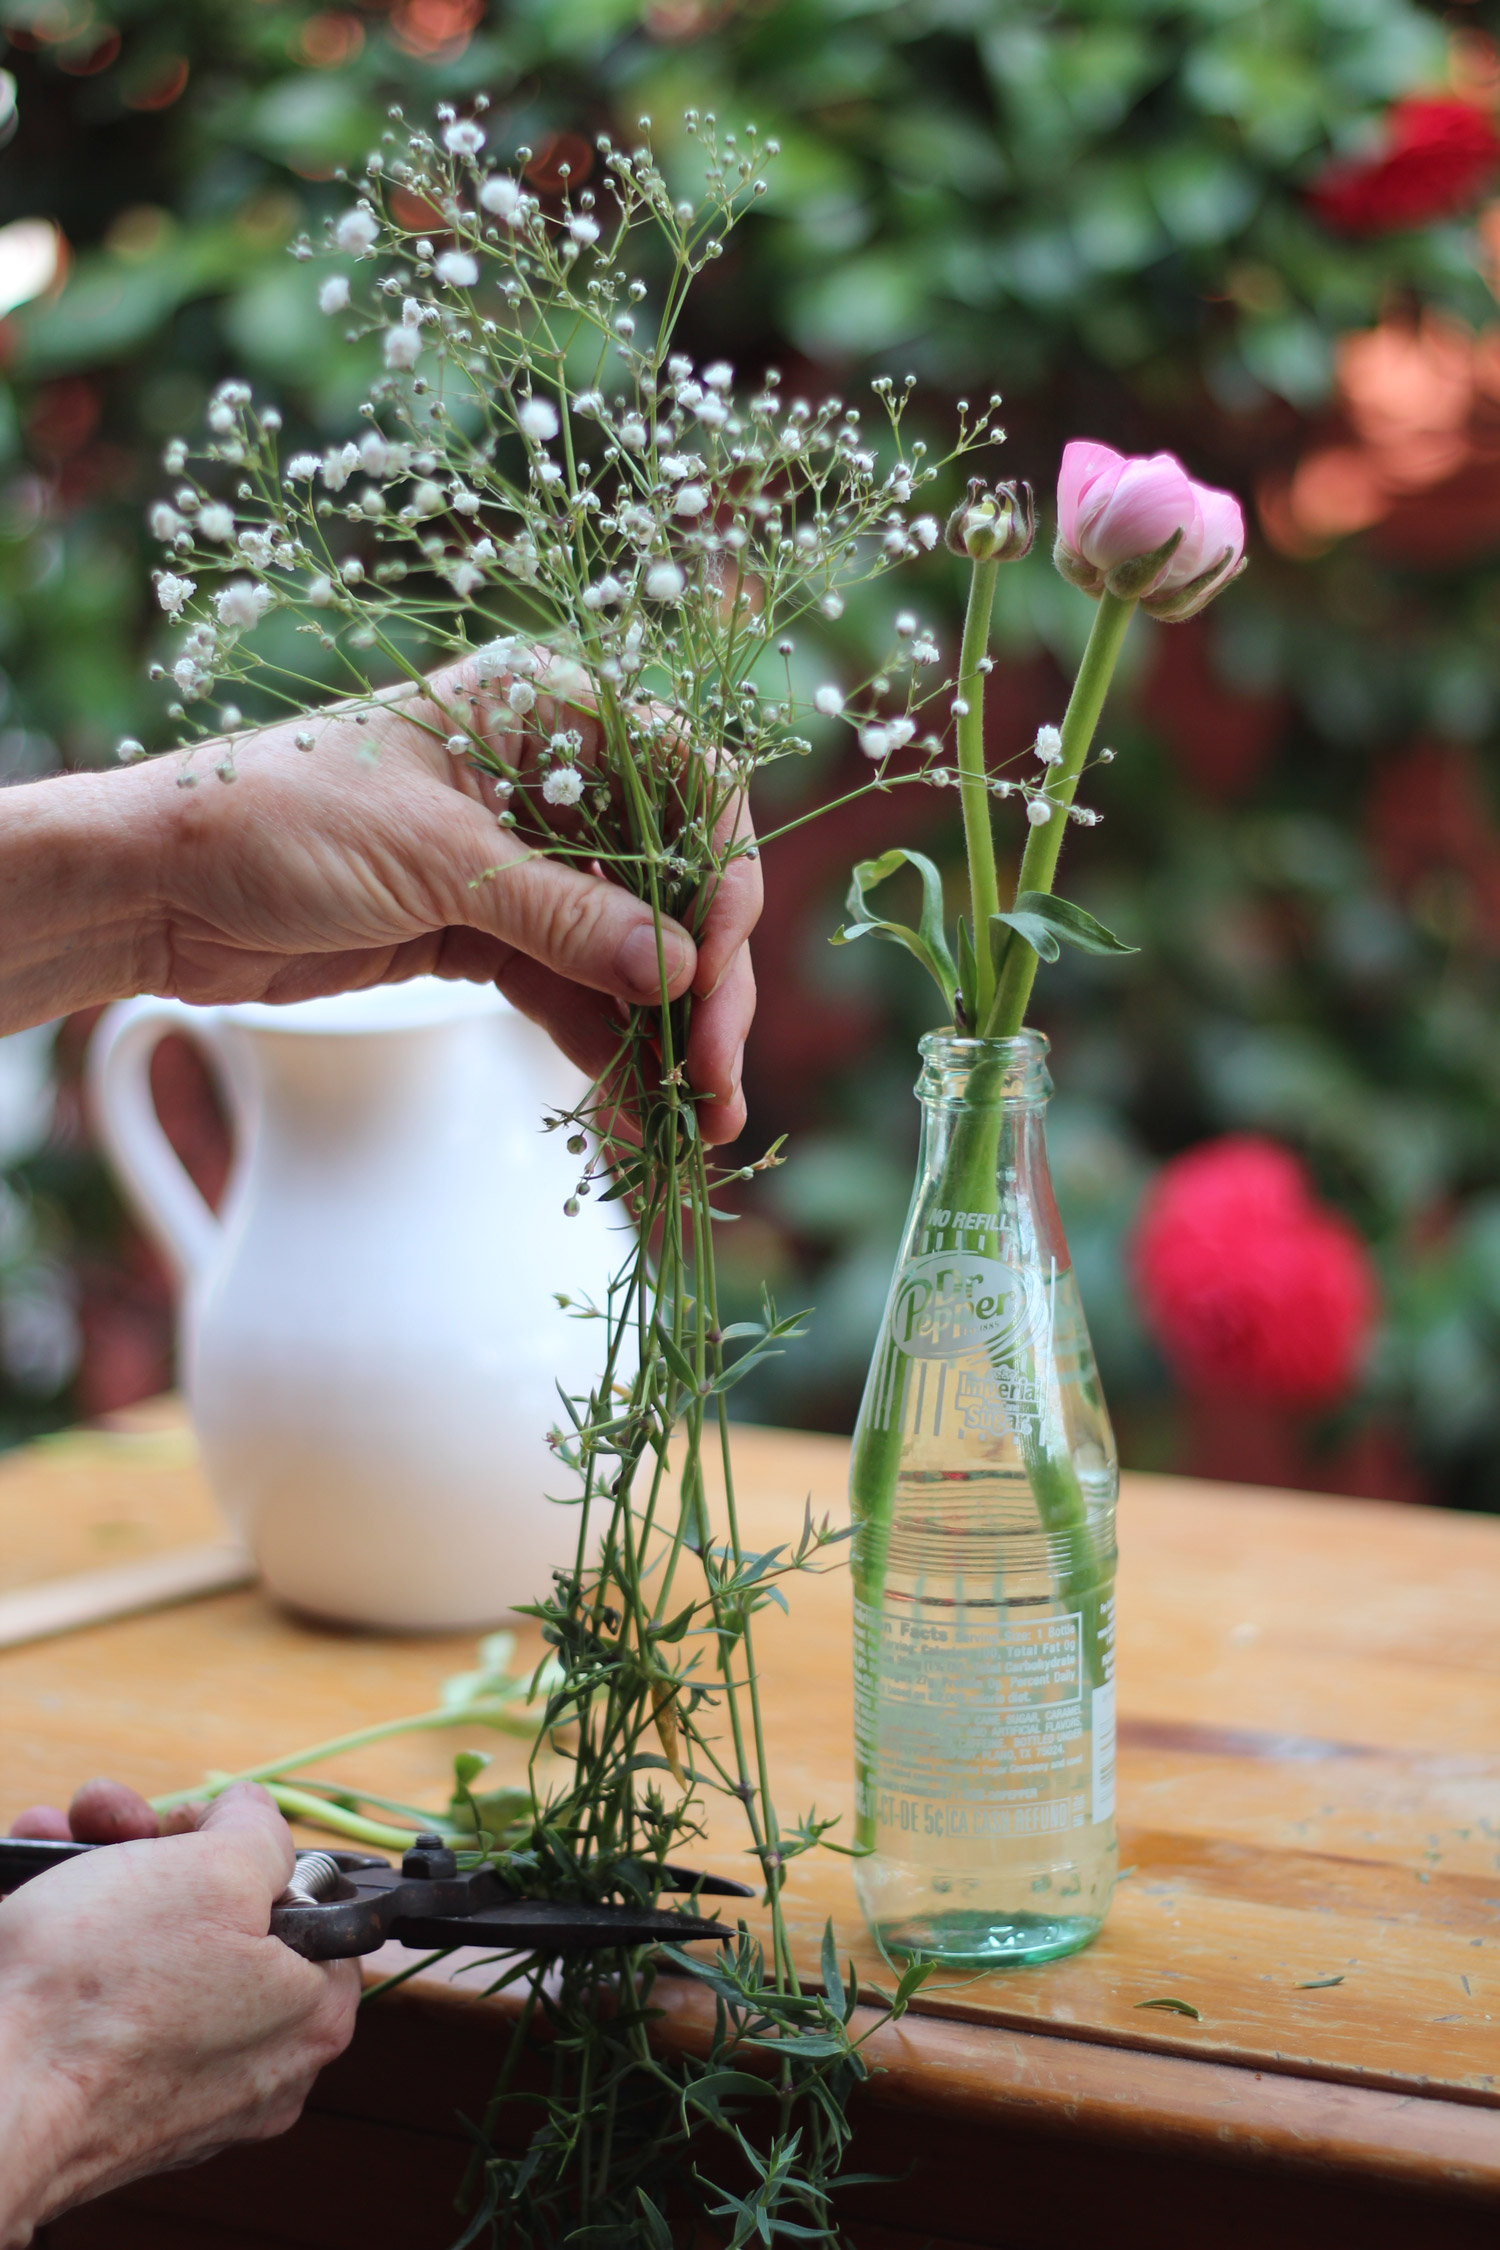 Next measure the baby's breath and cut. It should be a couple of inches higher than the ranunculus.